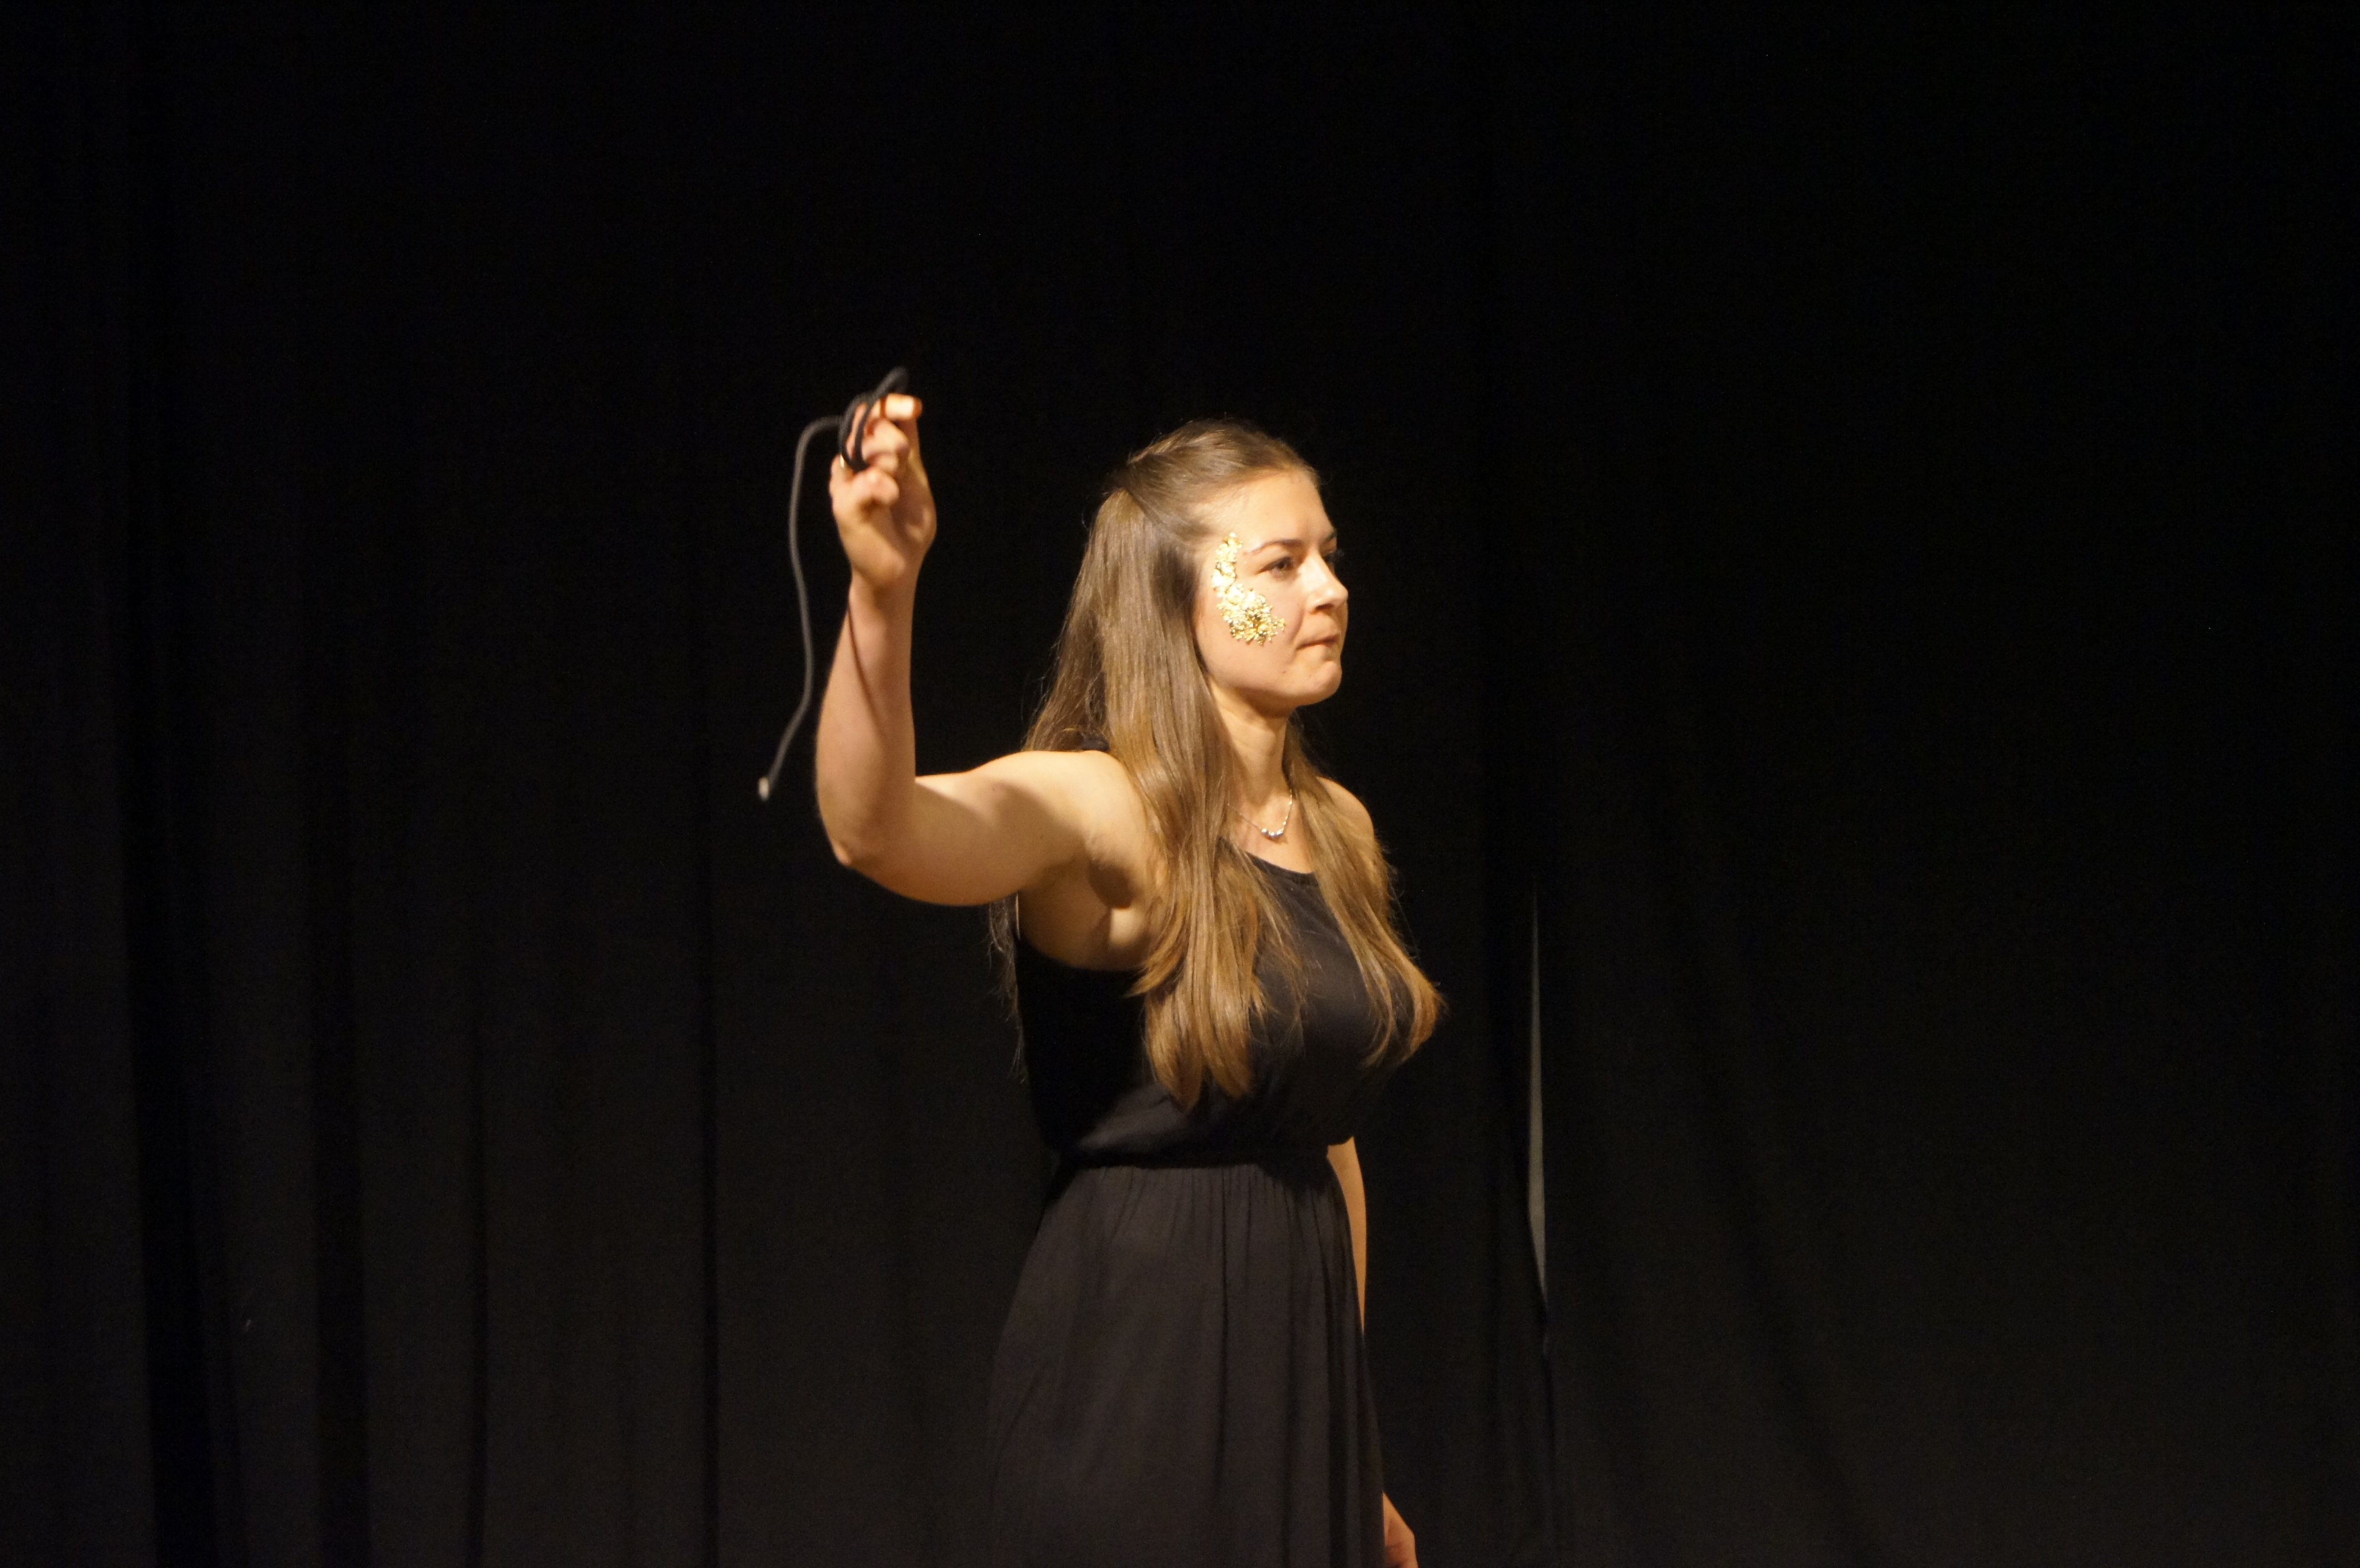 Theatre performance, woman on stage with a black dress, dark blonde hair, golden flakes on her right cheek, holding a string. Black curtain behind her. She looks angry